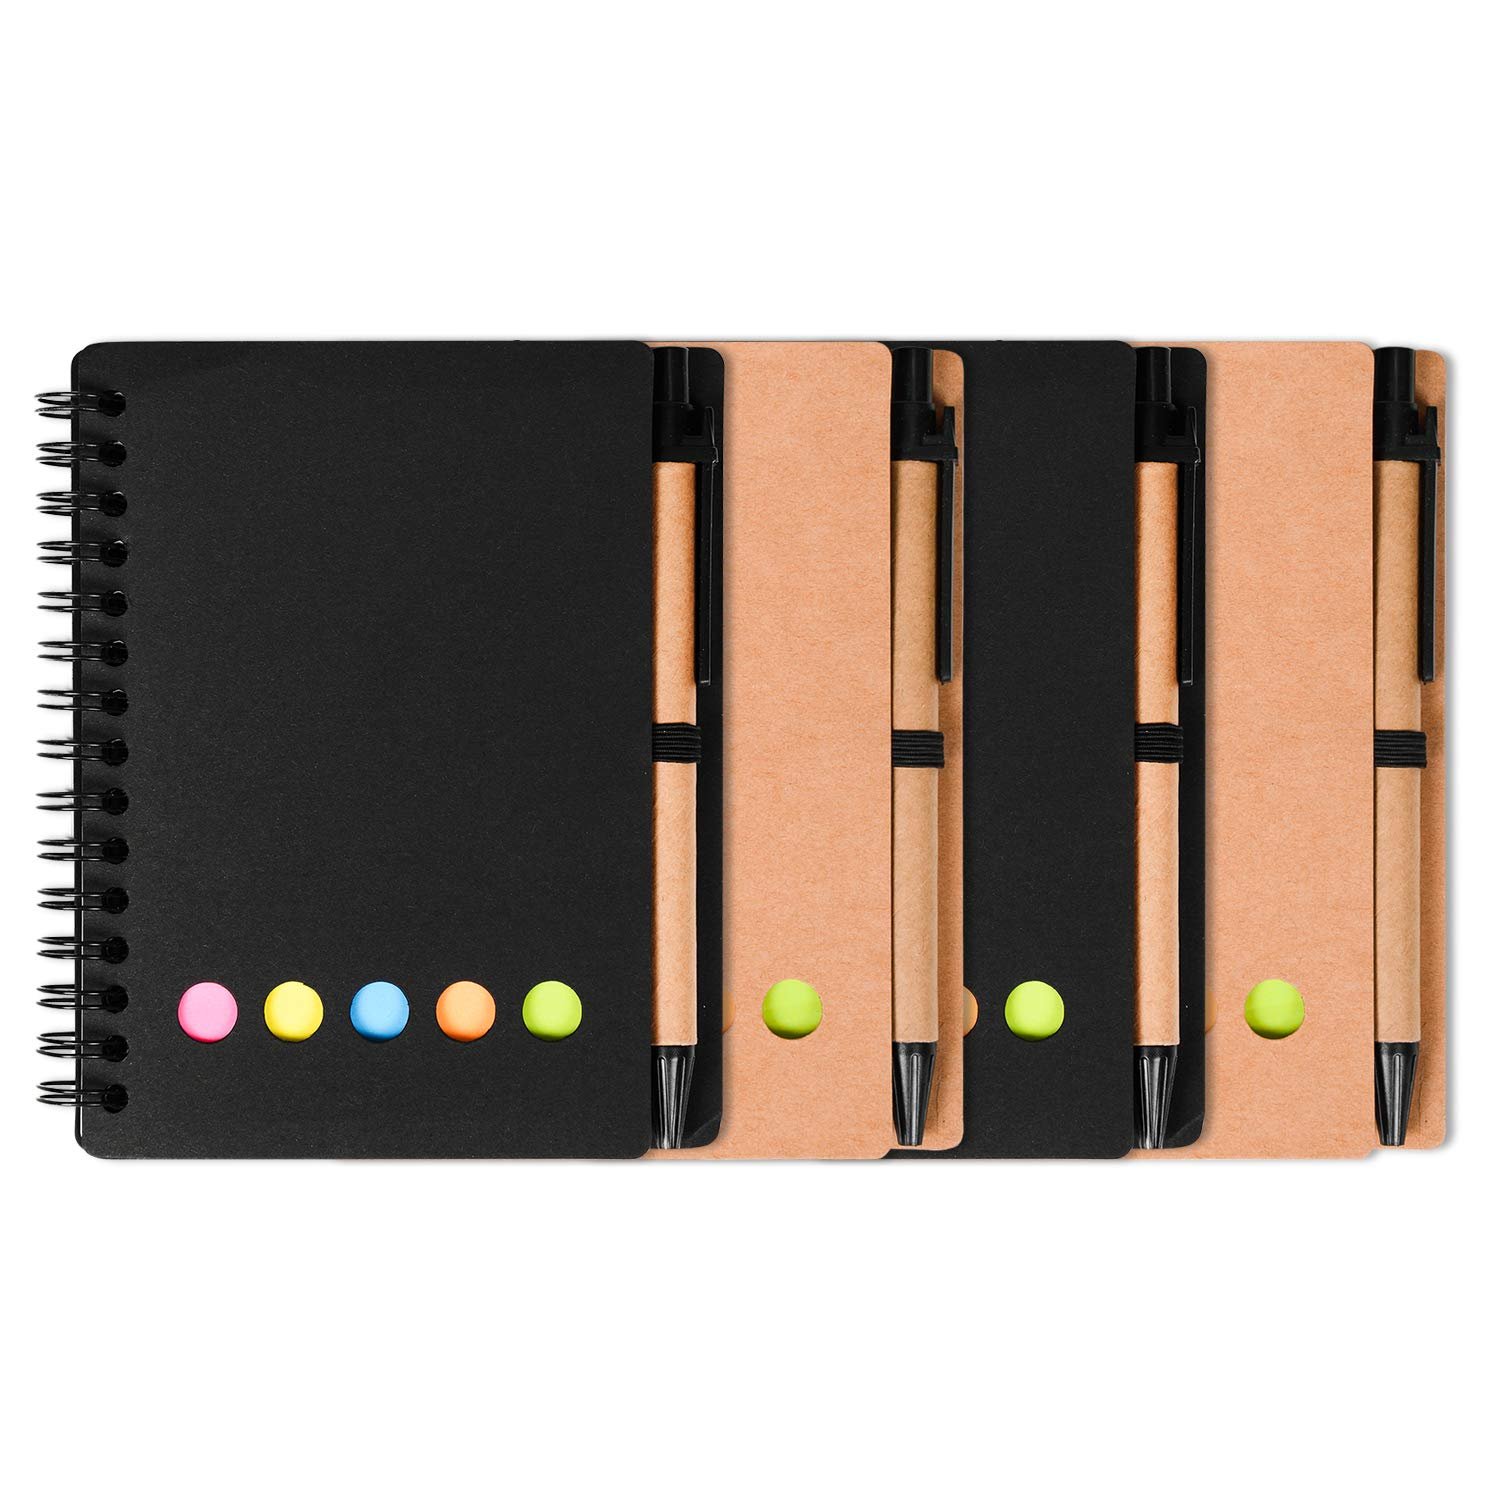 4 Packs 4.5''x5.5'' Spiral Notebook college ruled Pocket notebook Spiral Lined Notepad Set with Pen Loop and Sticky Notes, Page Marker Colored Index Tabs Flags Black and Brown Cover